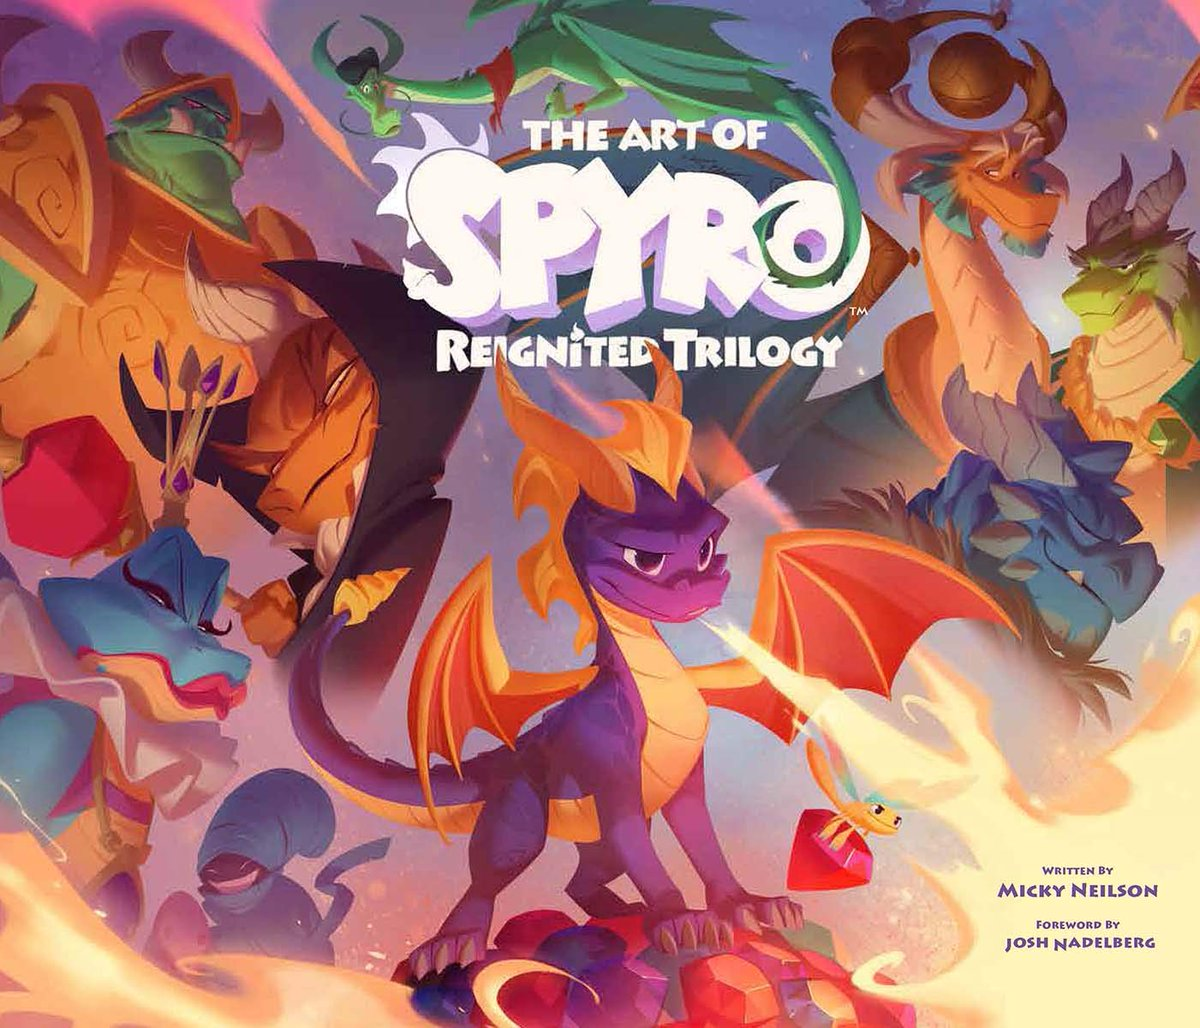 The Art of Spyro: Reignited Trilogy hardcover book preorder is $38.04 on Amazon (240 pages, cover art updated)